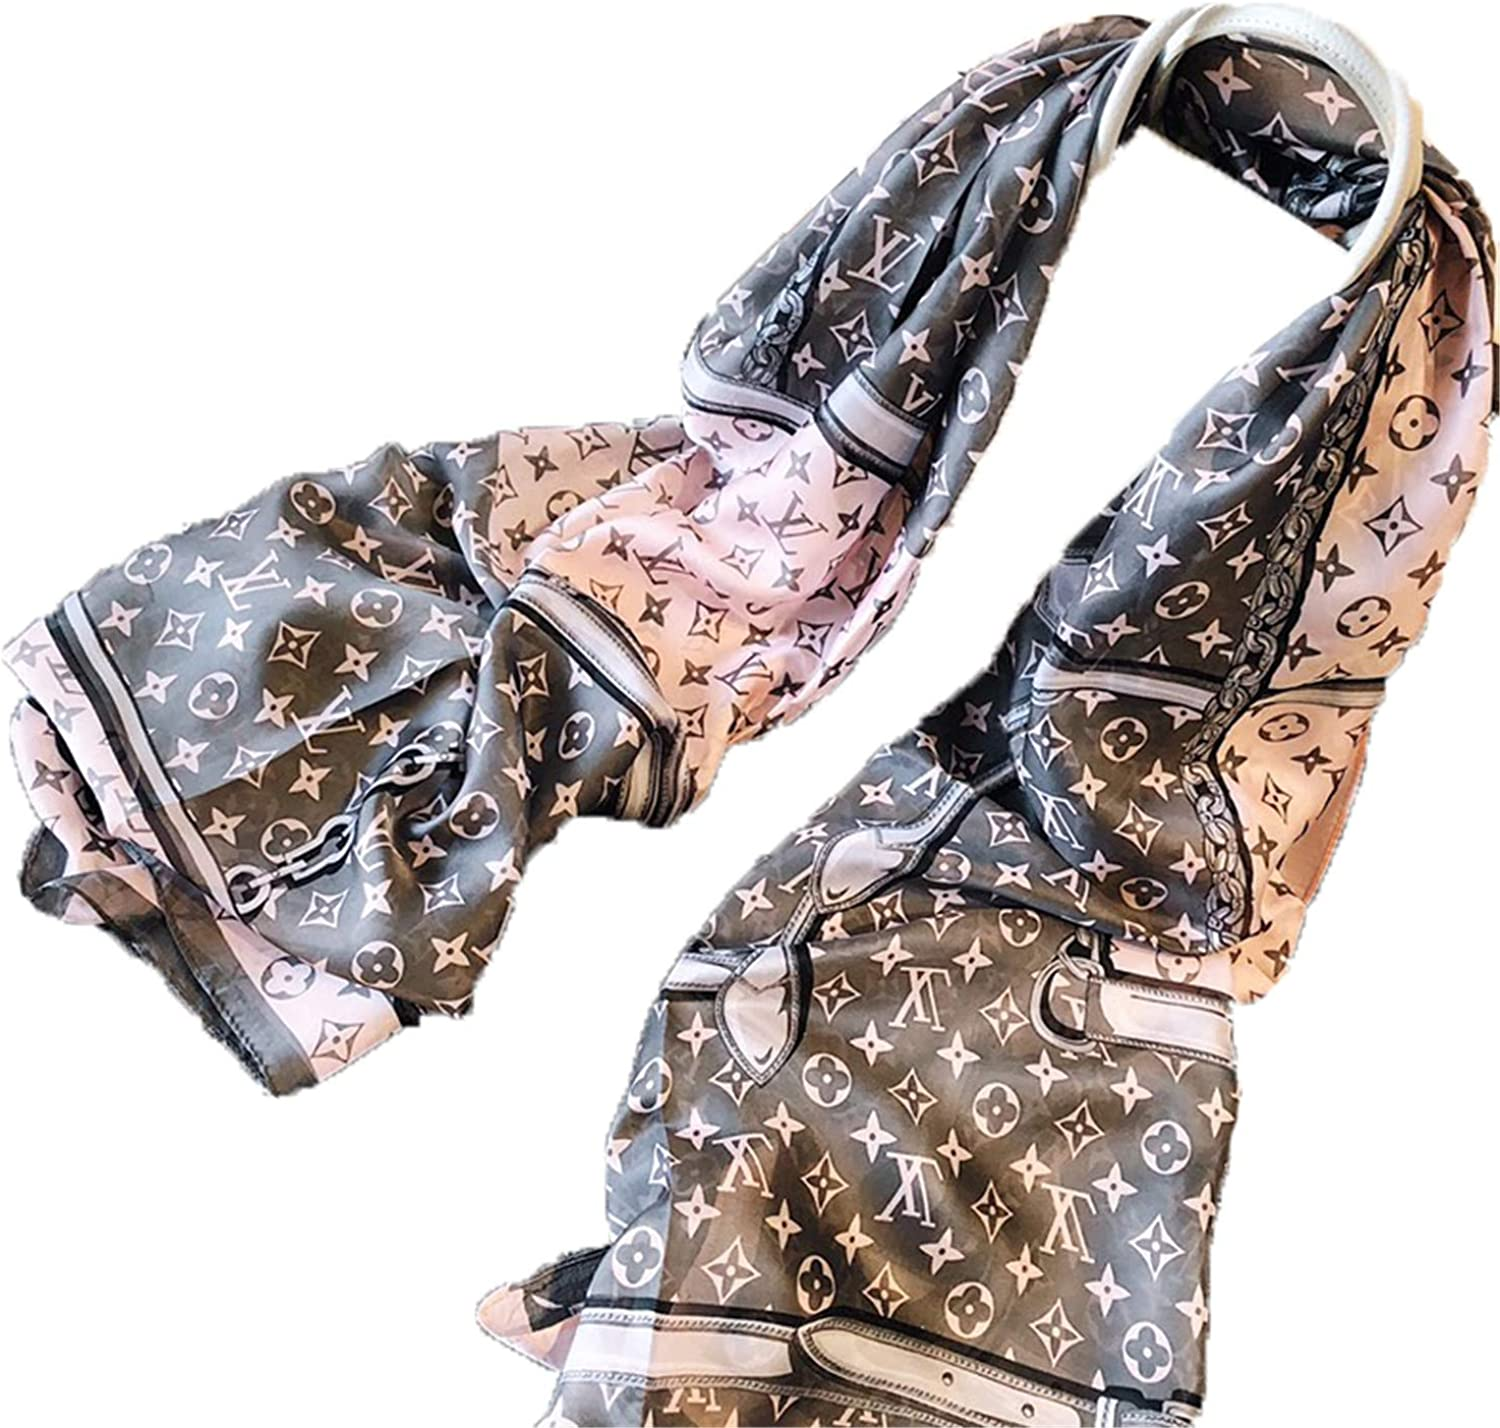 Fashion luxury silk scarves are suitable for women and men in four seasons. Luxury gifts are comfortable to wear anywhere (Z33)